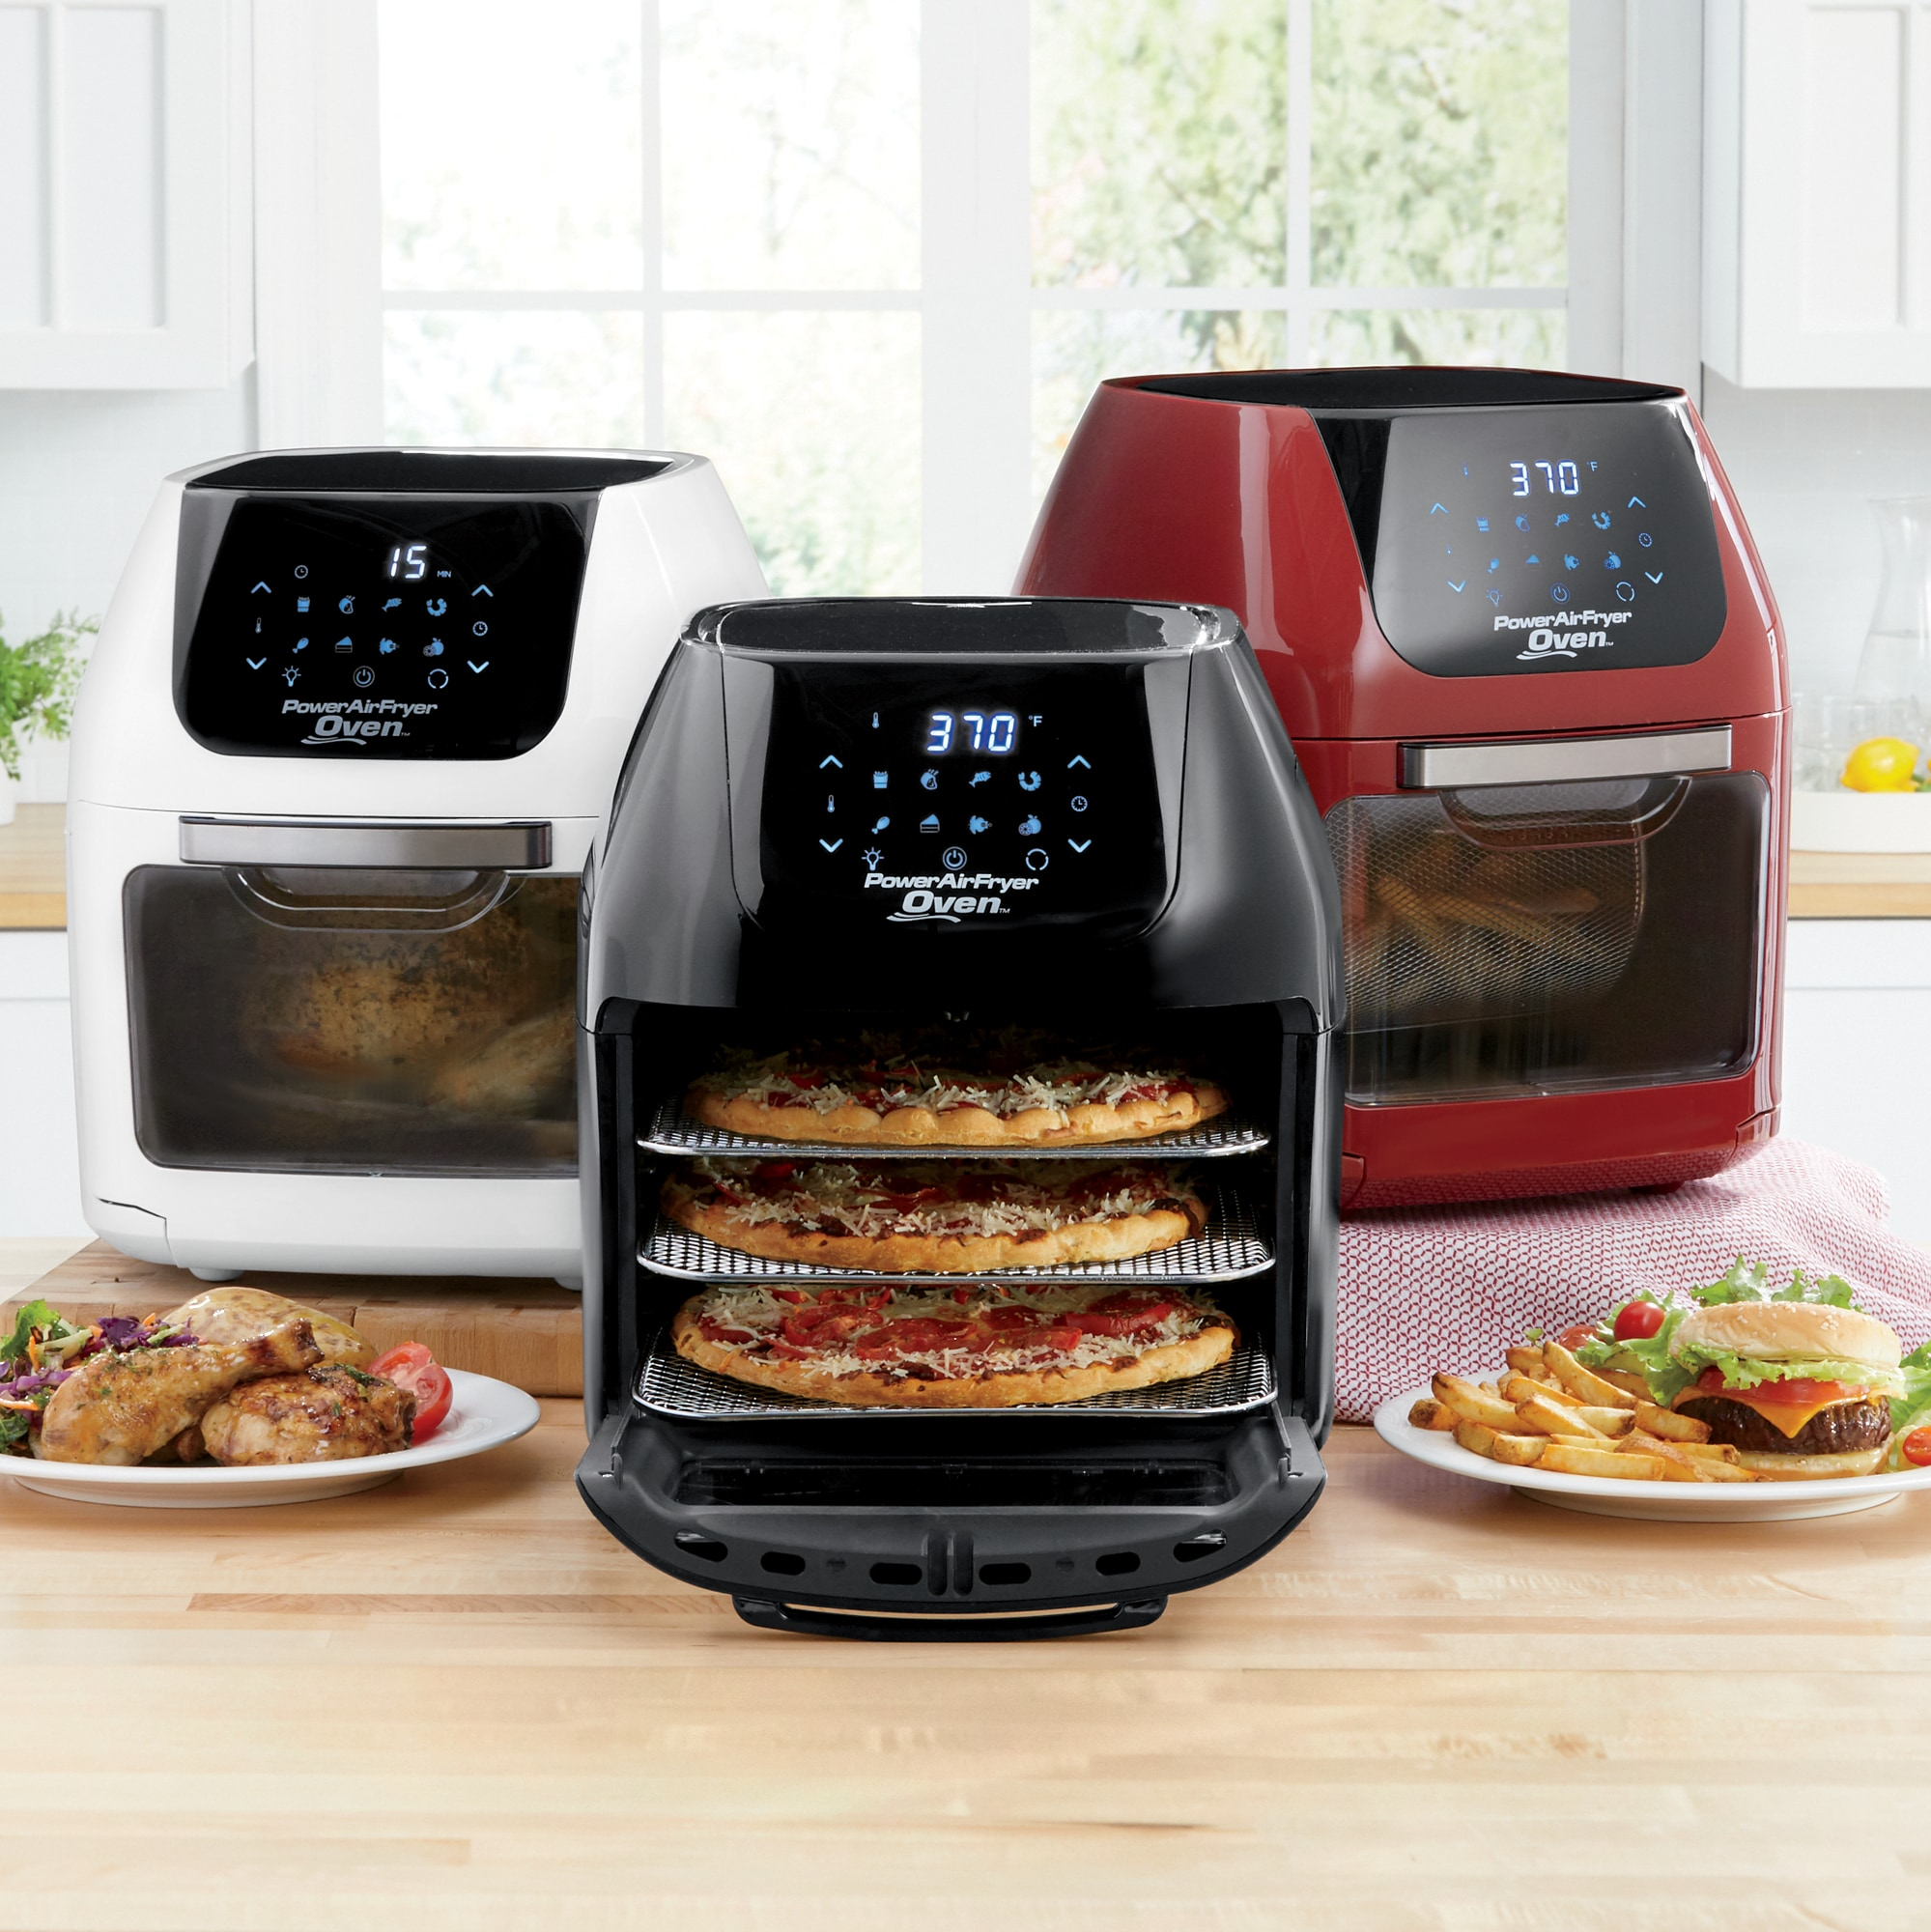 small kitchen appliances buy table stand mixers slow cookers deep fryers 7 in 1 power air fryer oven as seen on tv